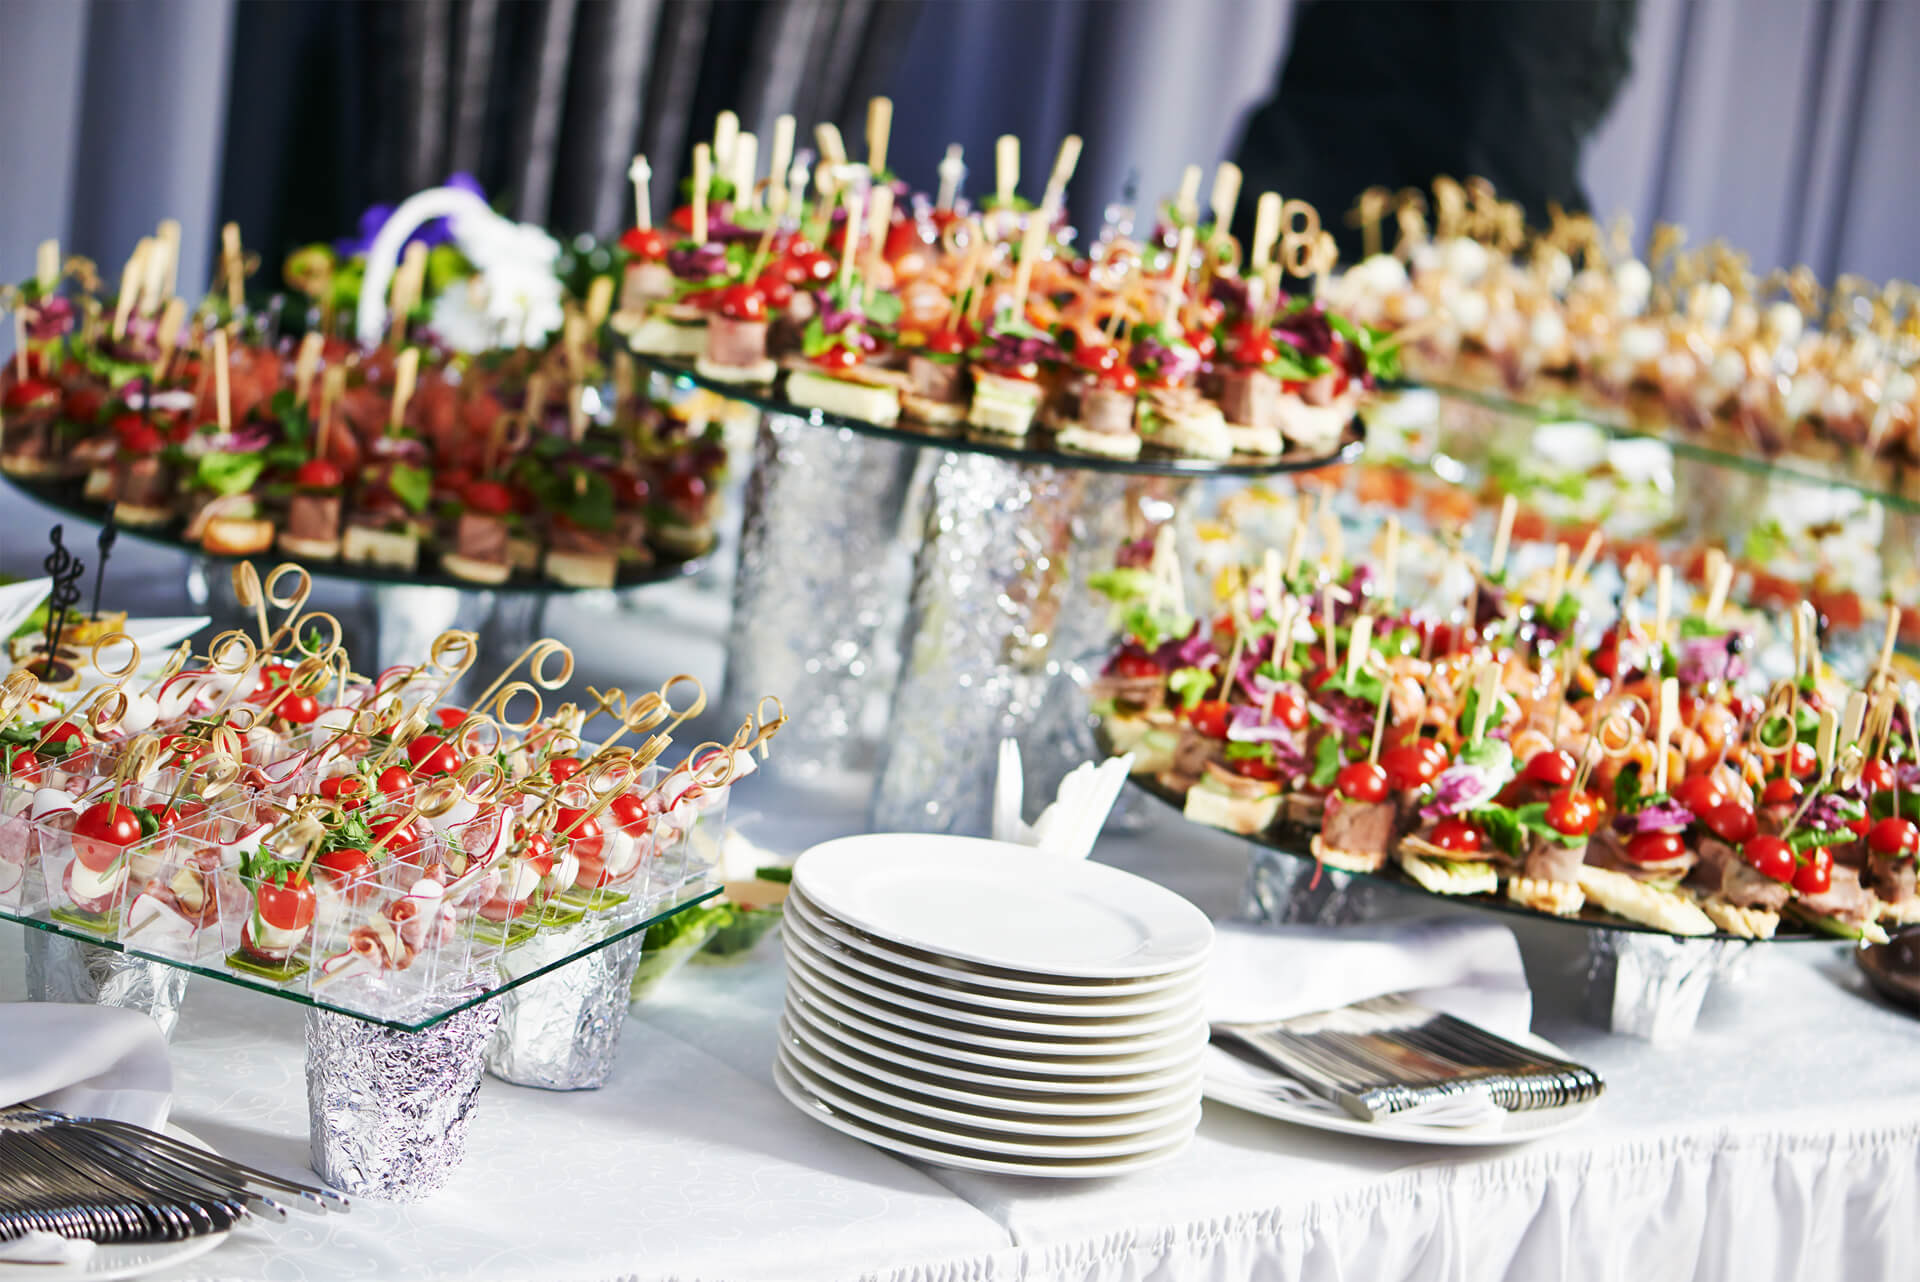 catering-services-background-with-snacks-on-guests-table-in-rest